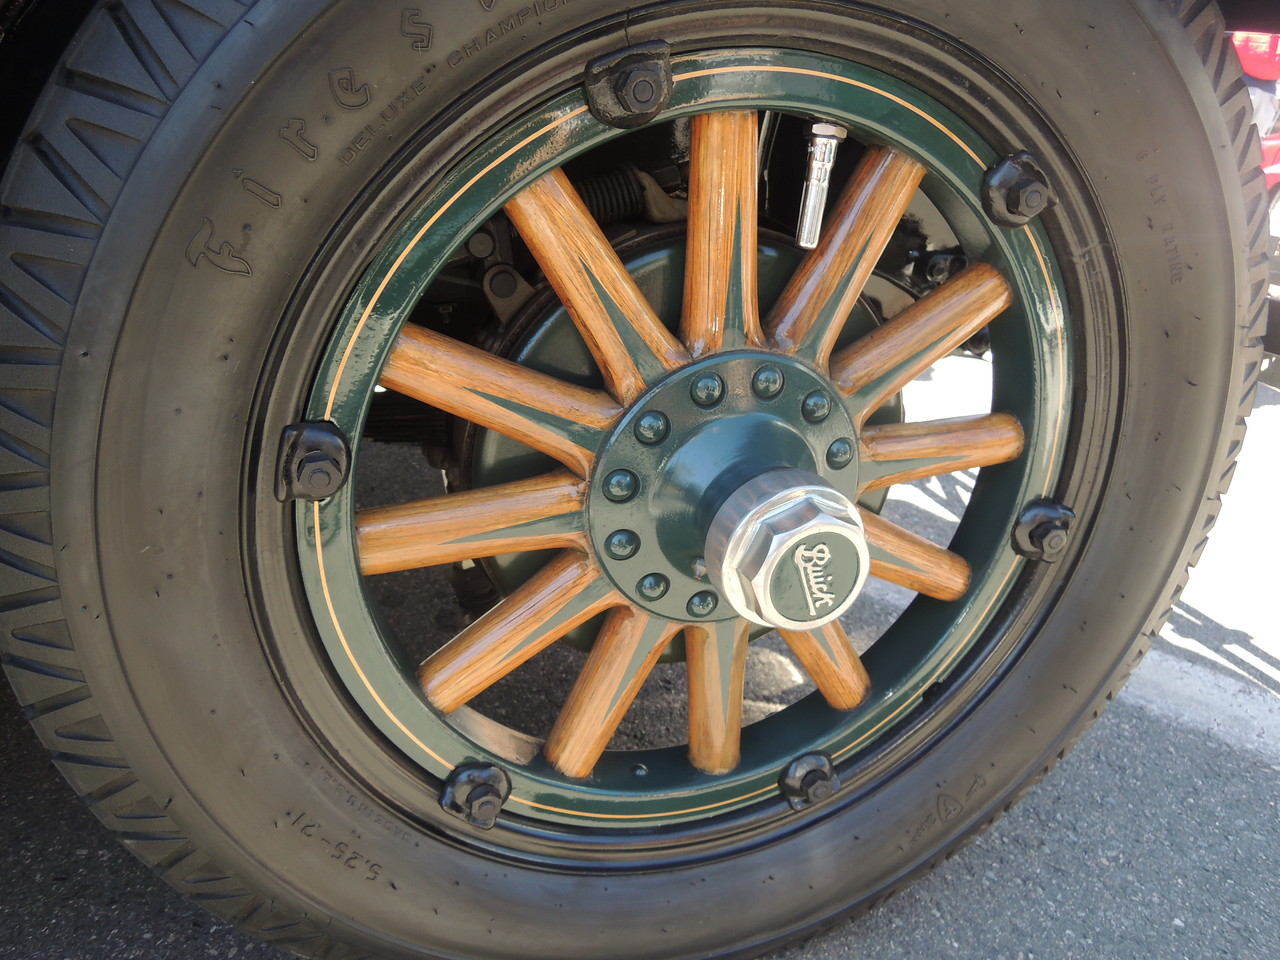 Wood spoke wheels on a 1927 Buick.